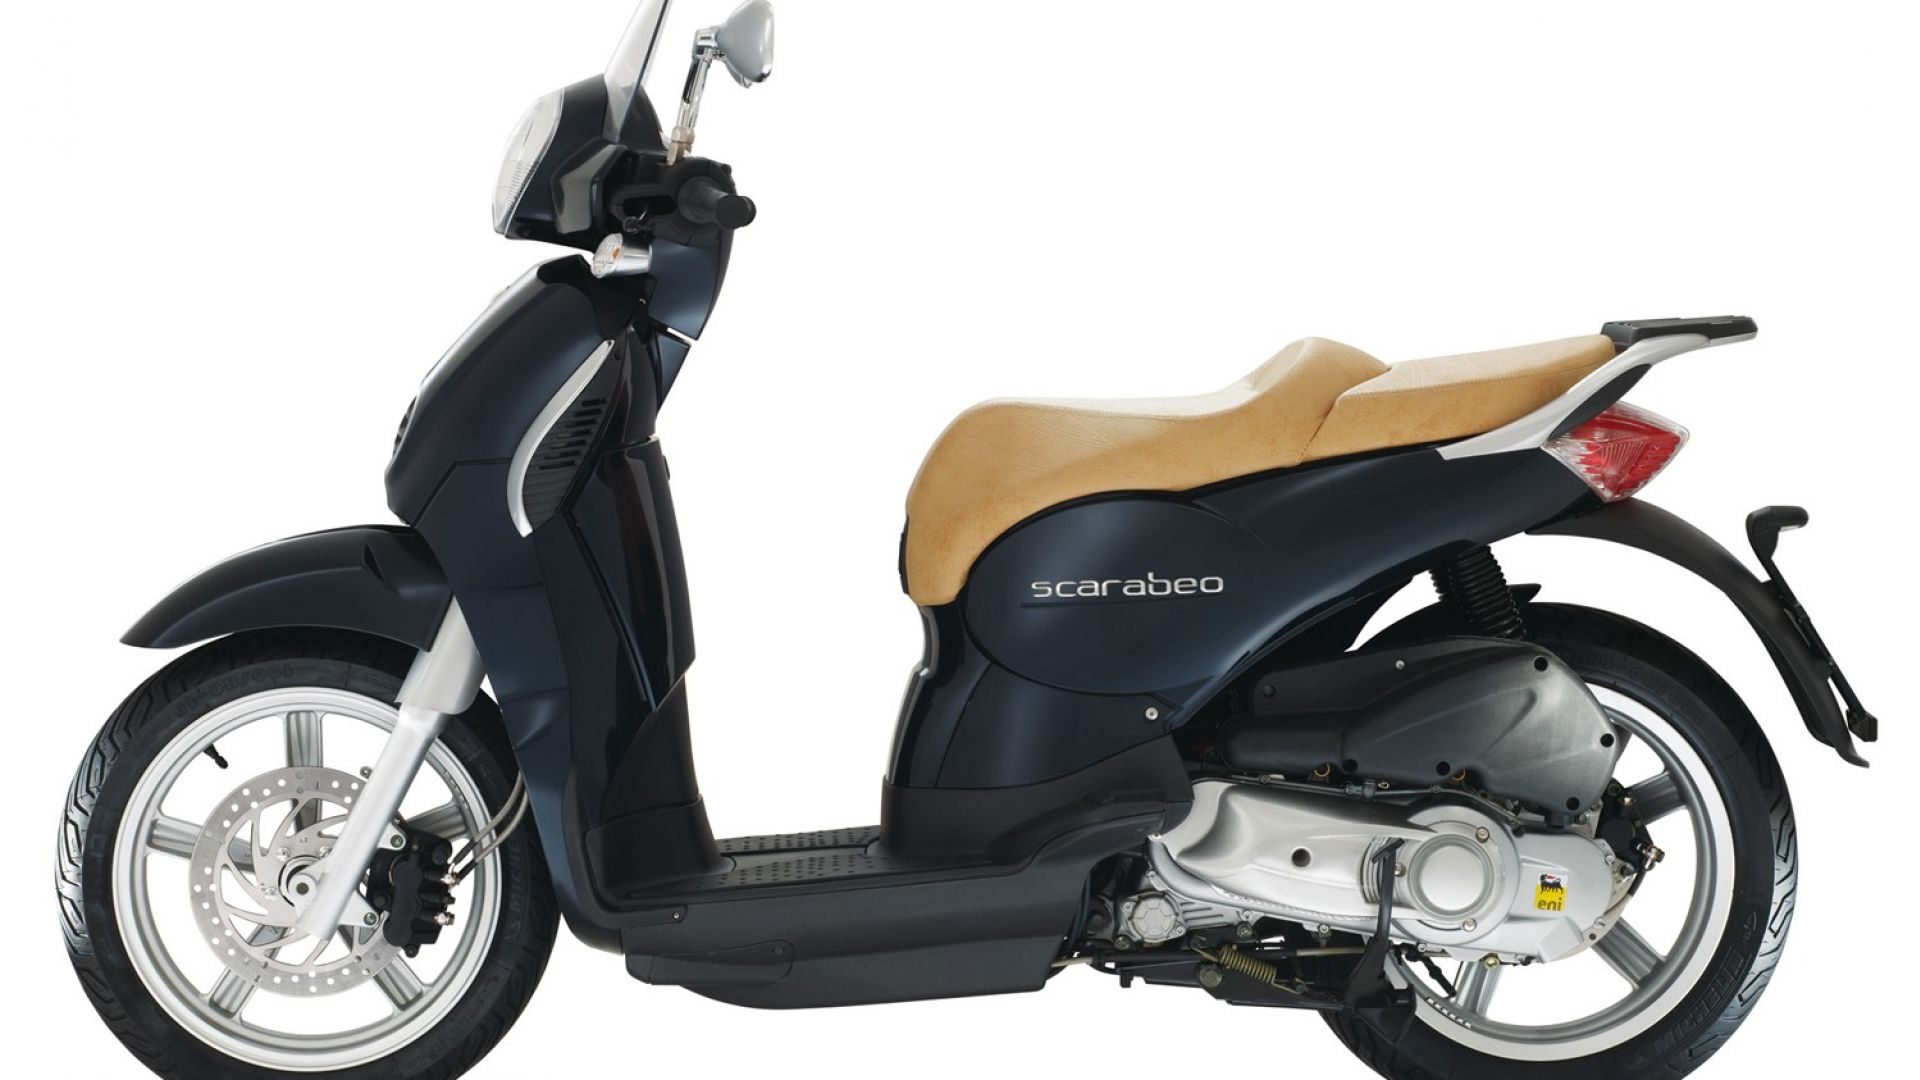 prova aprilia scarabeo 125 e 200 my 2011 motorbox. Black Bedroom Furniture Sets. Home Design Ideas